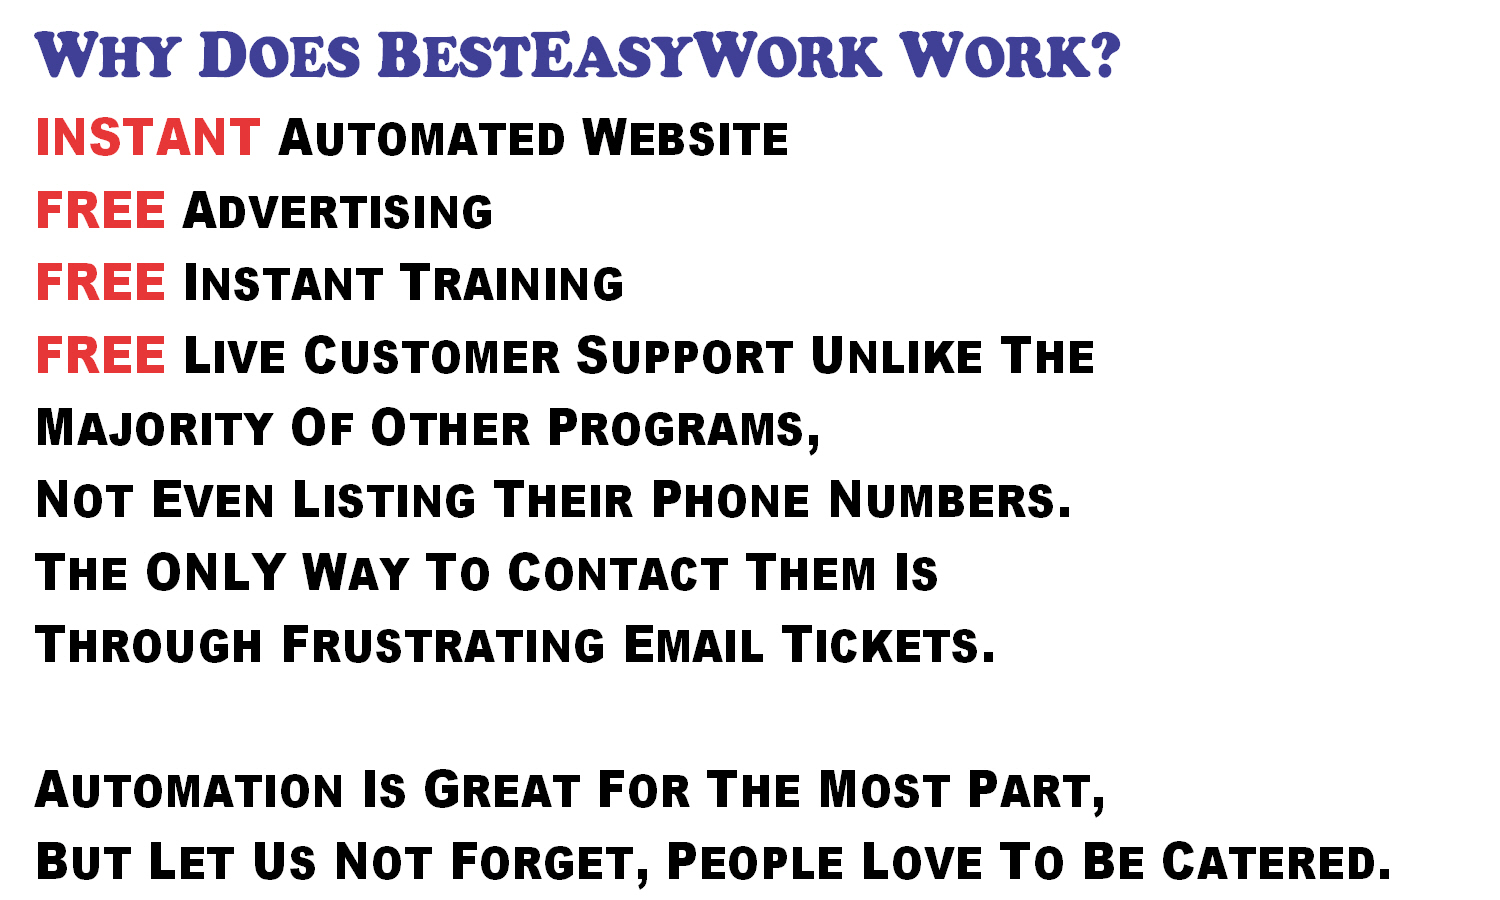 https://www.besteasywork.com/BEW-WORKS.JPG